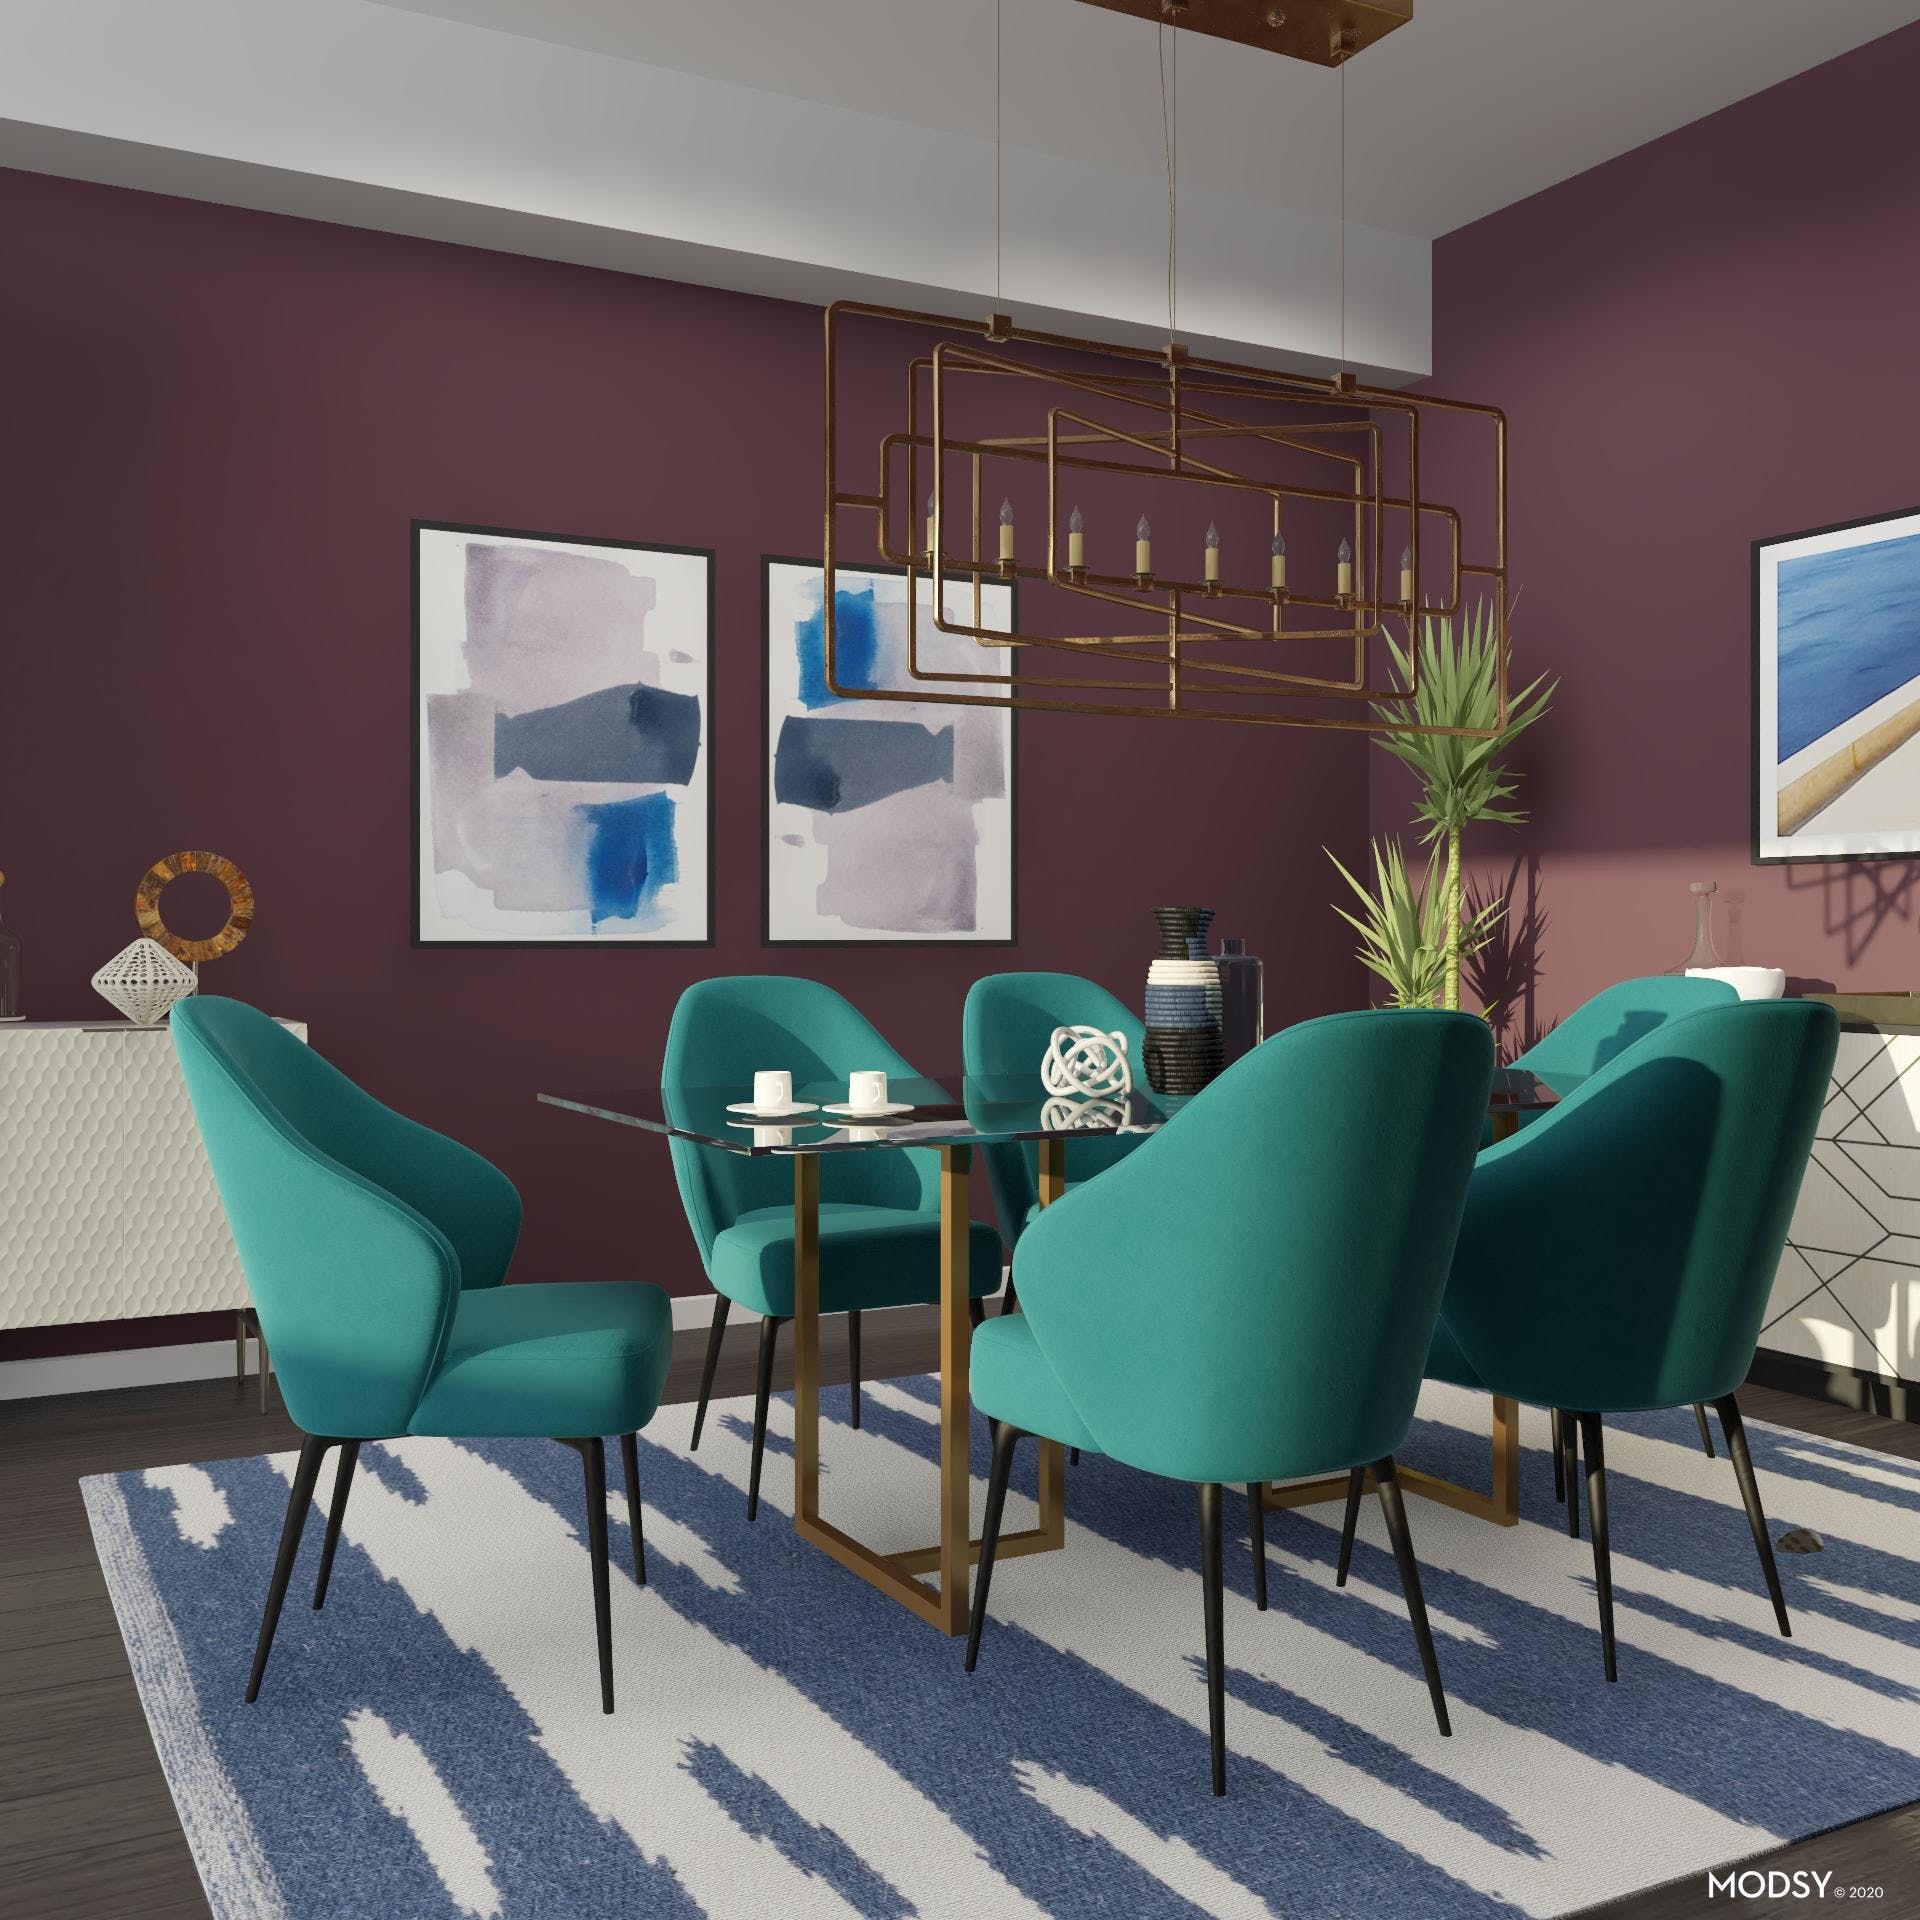 A Tasteful and Colorful Dining Room